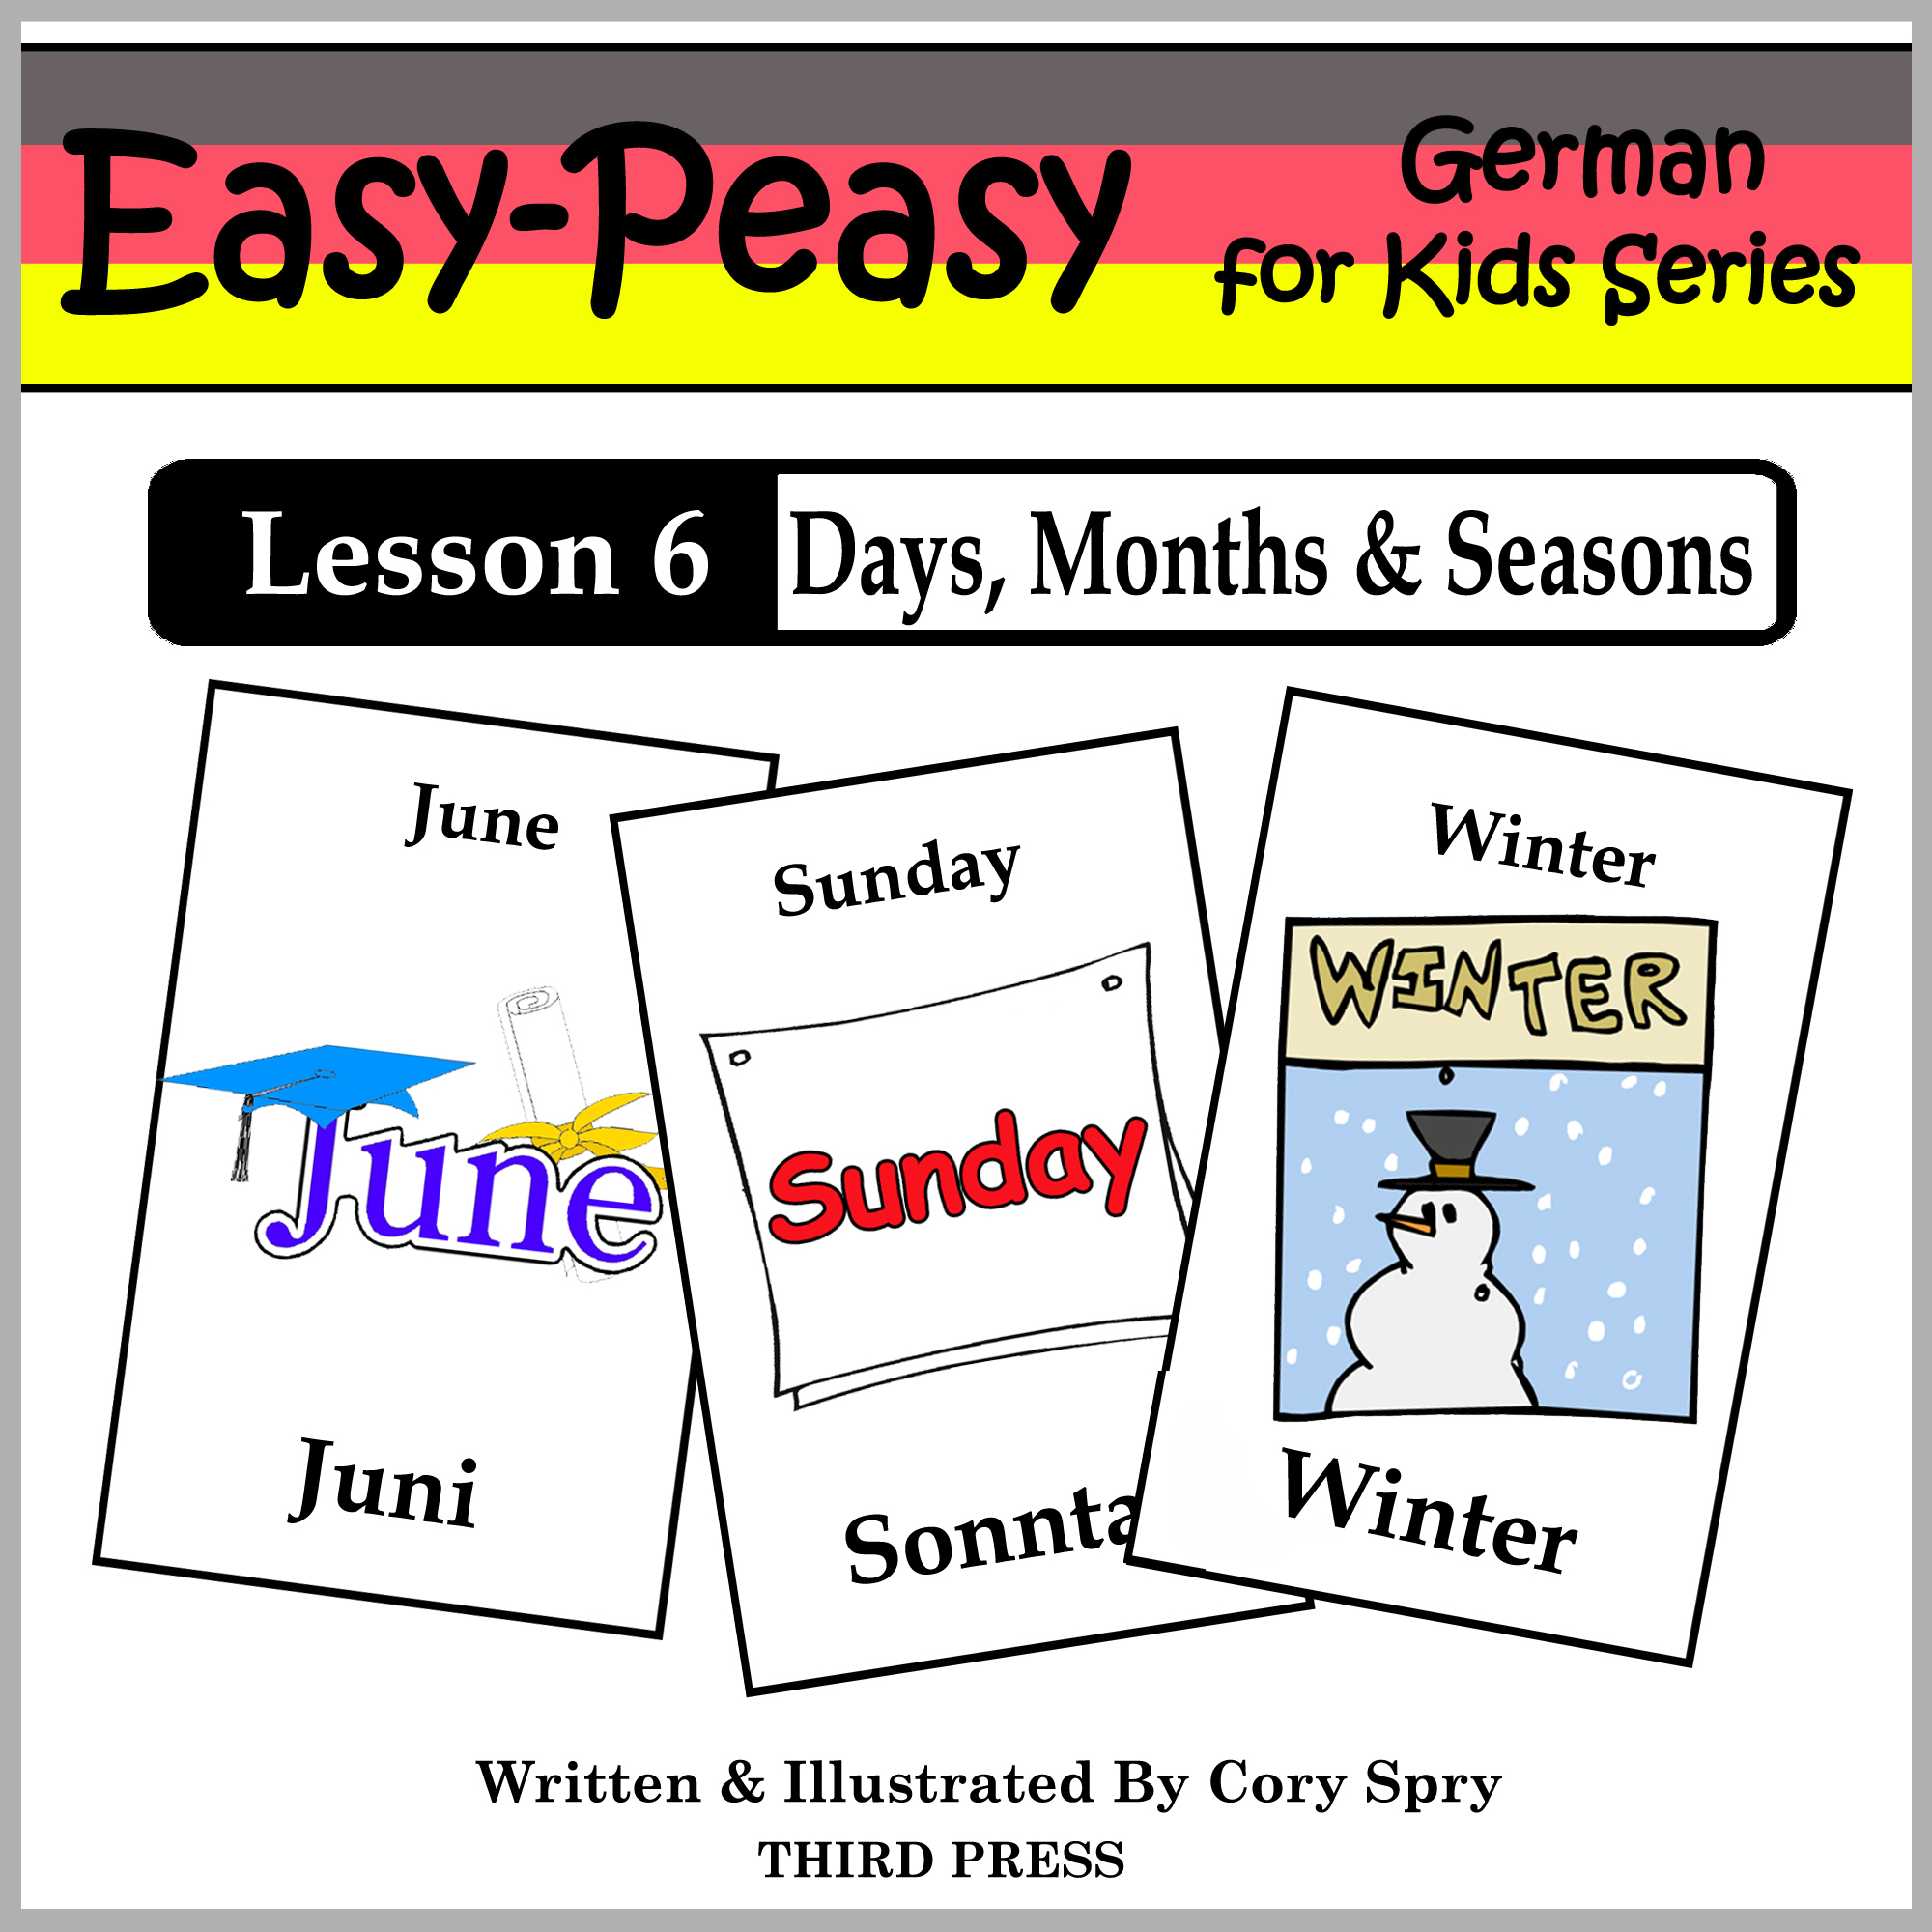 German Lesson 6: Months, Days & Seasons